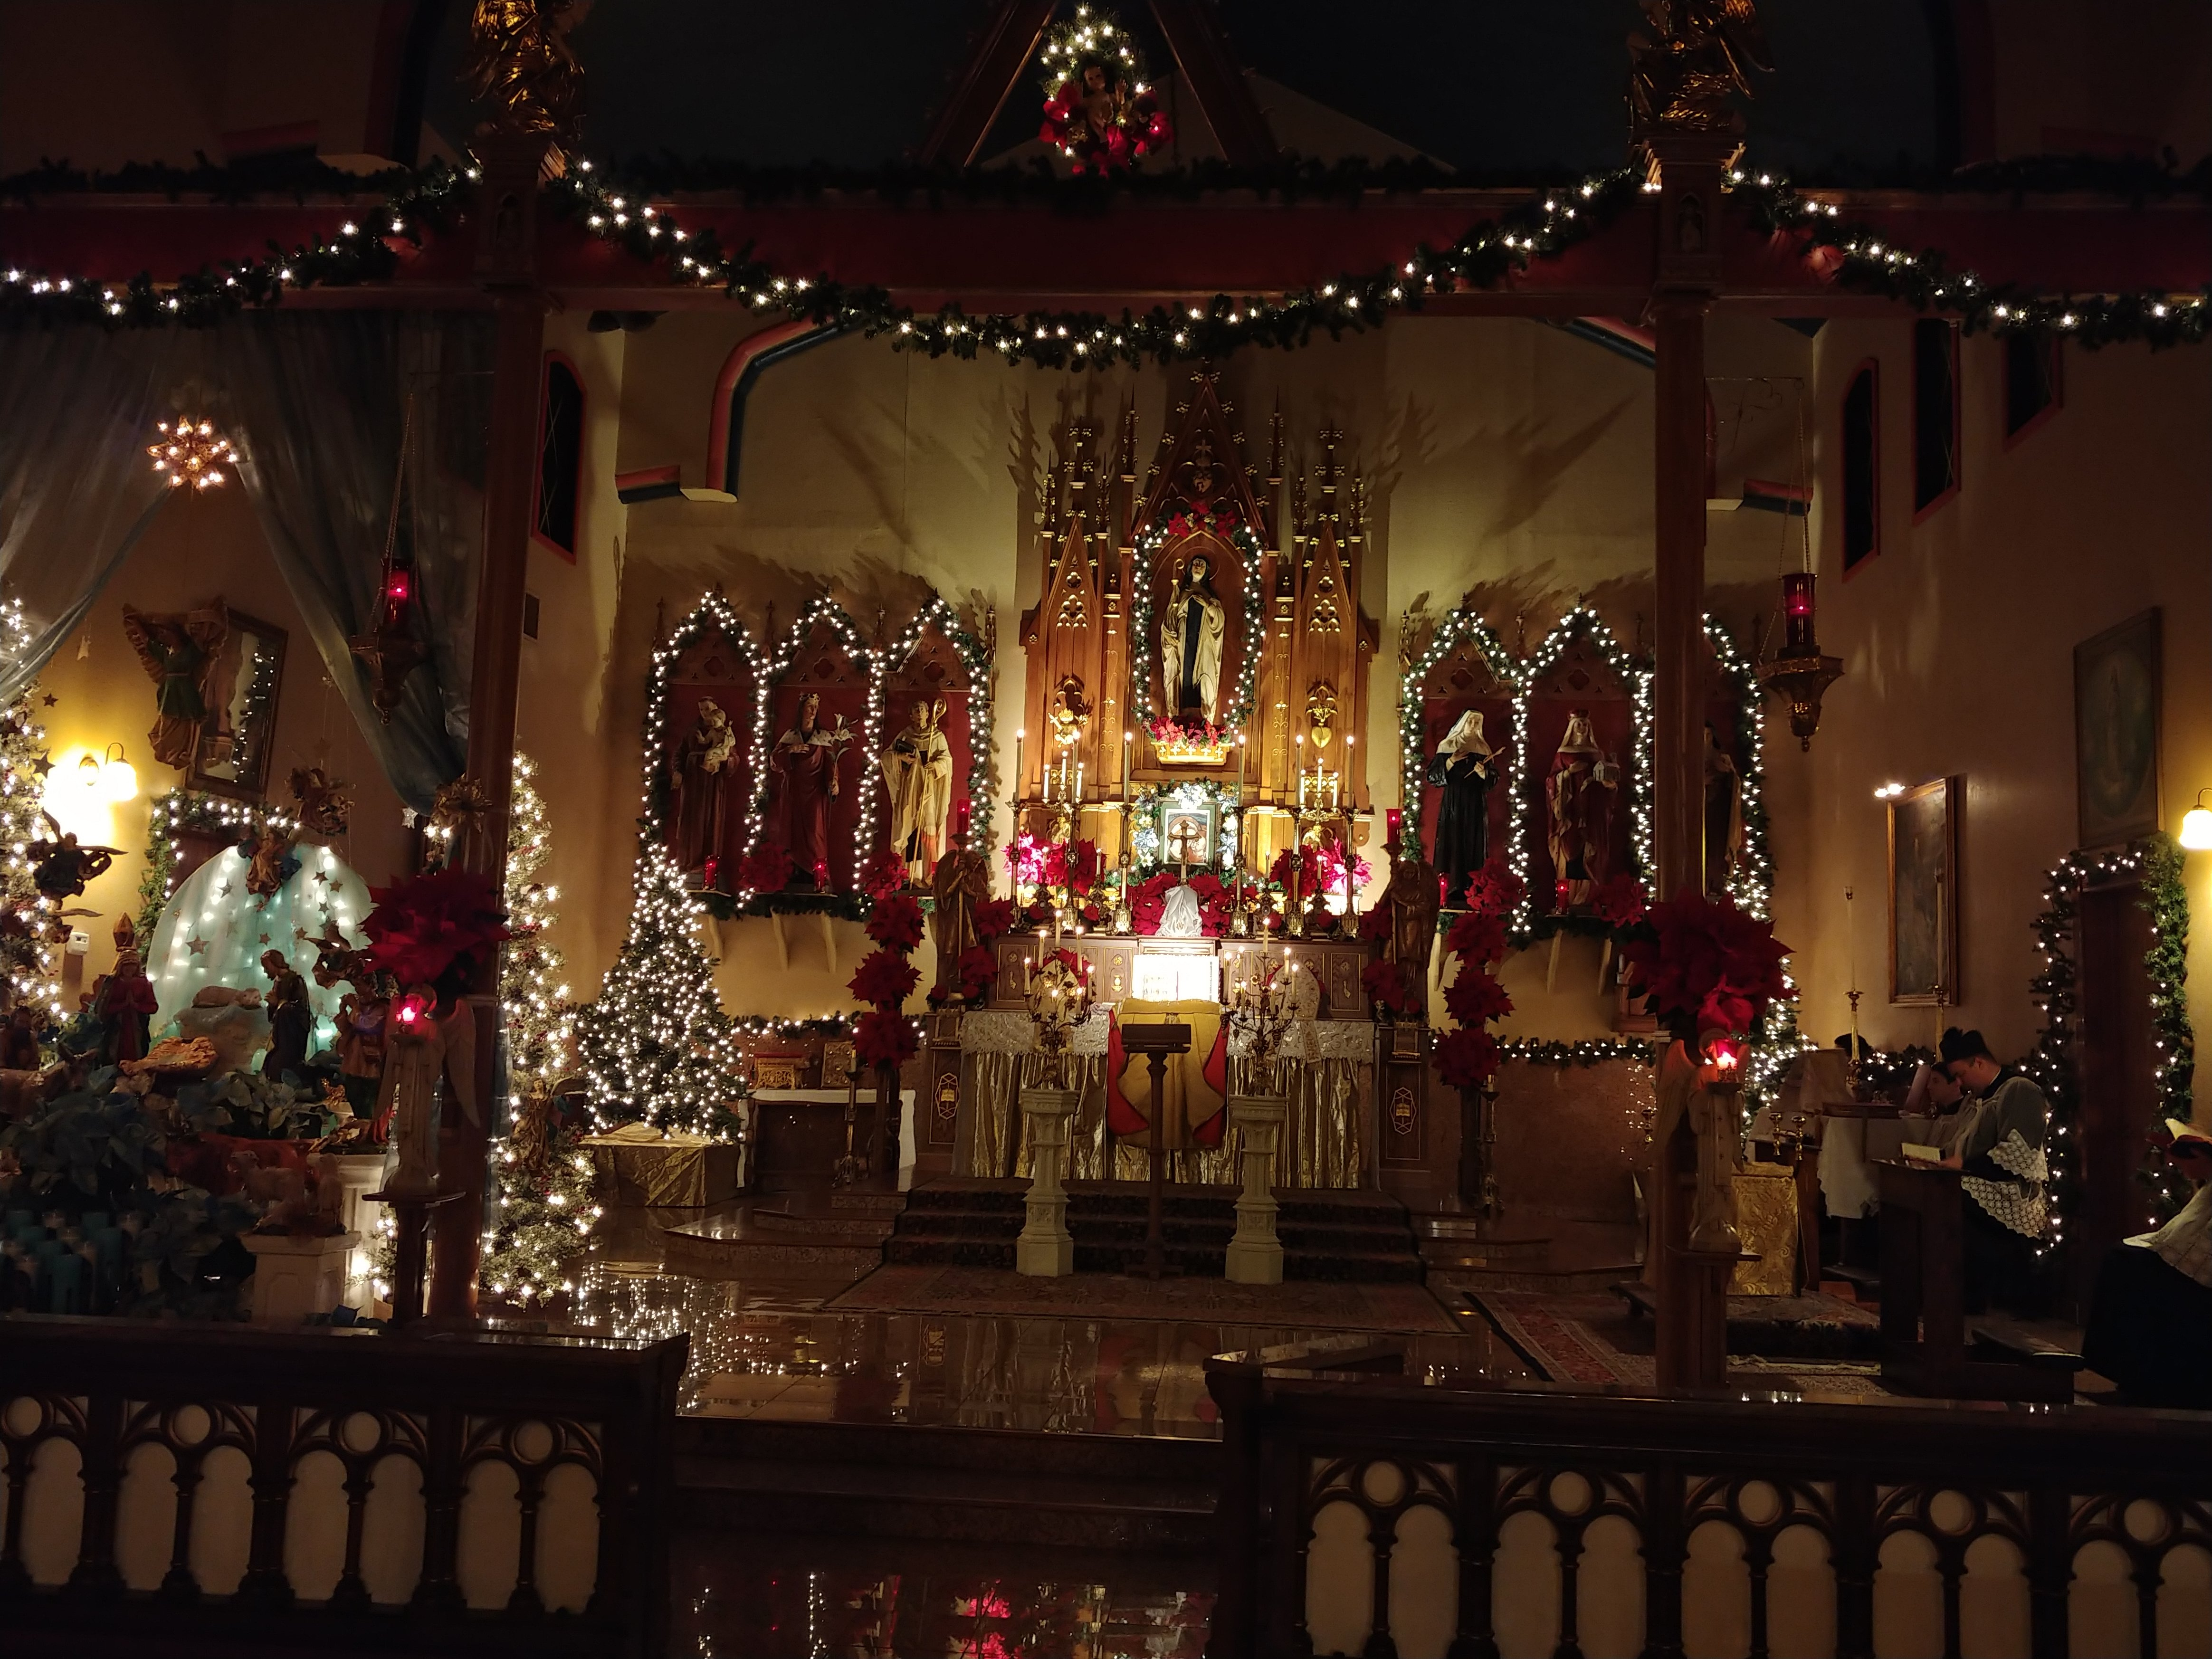 St. Gertrude the Great » Archive » Sunday within the Octave of Christmas